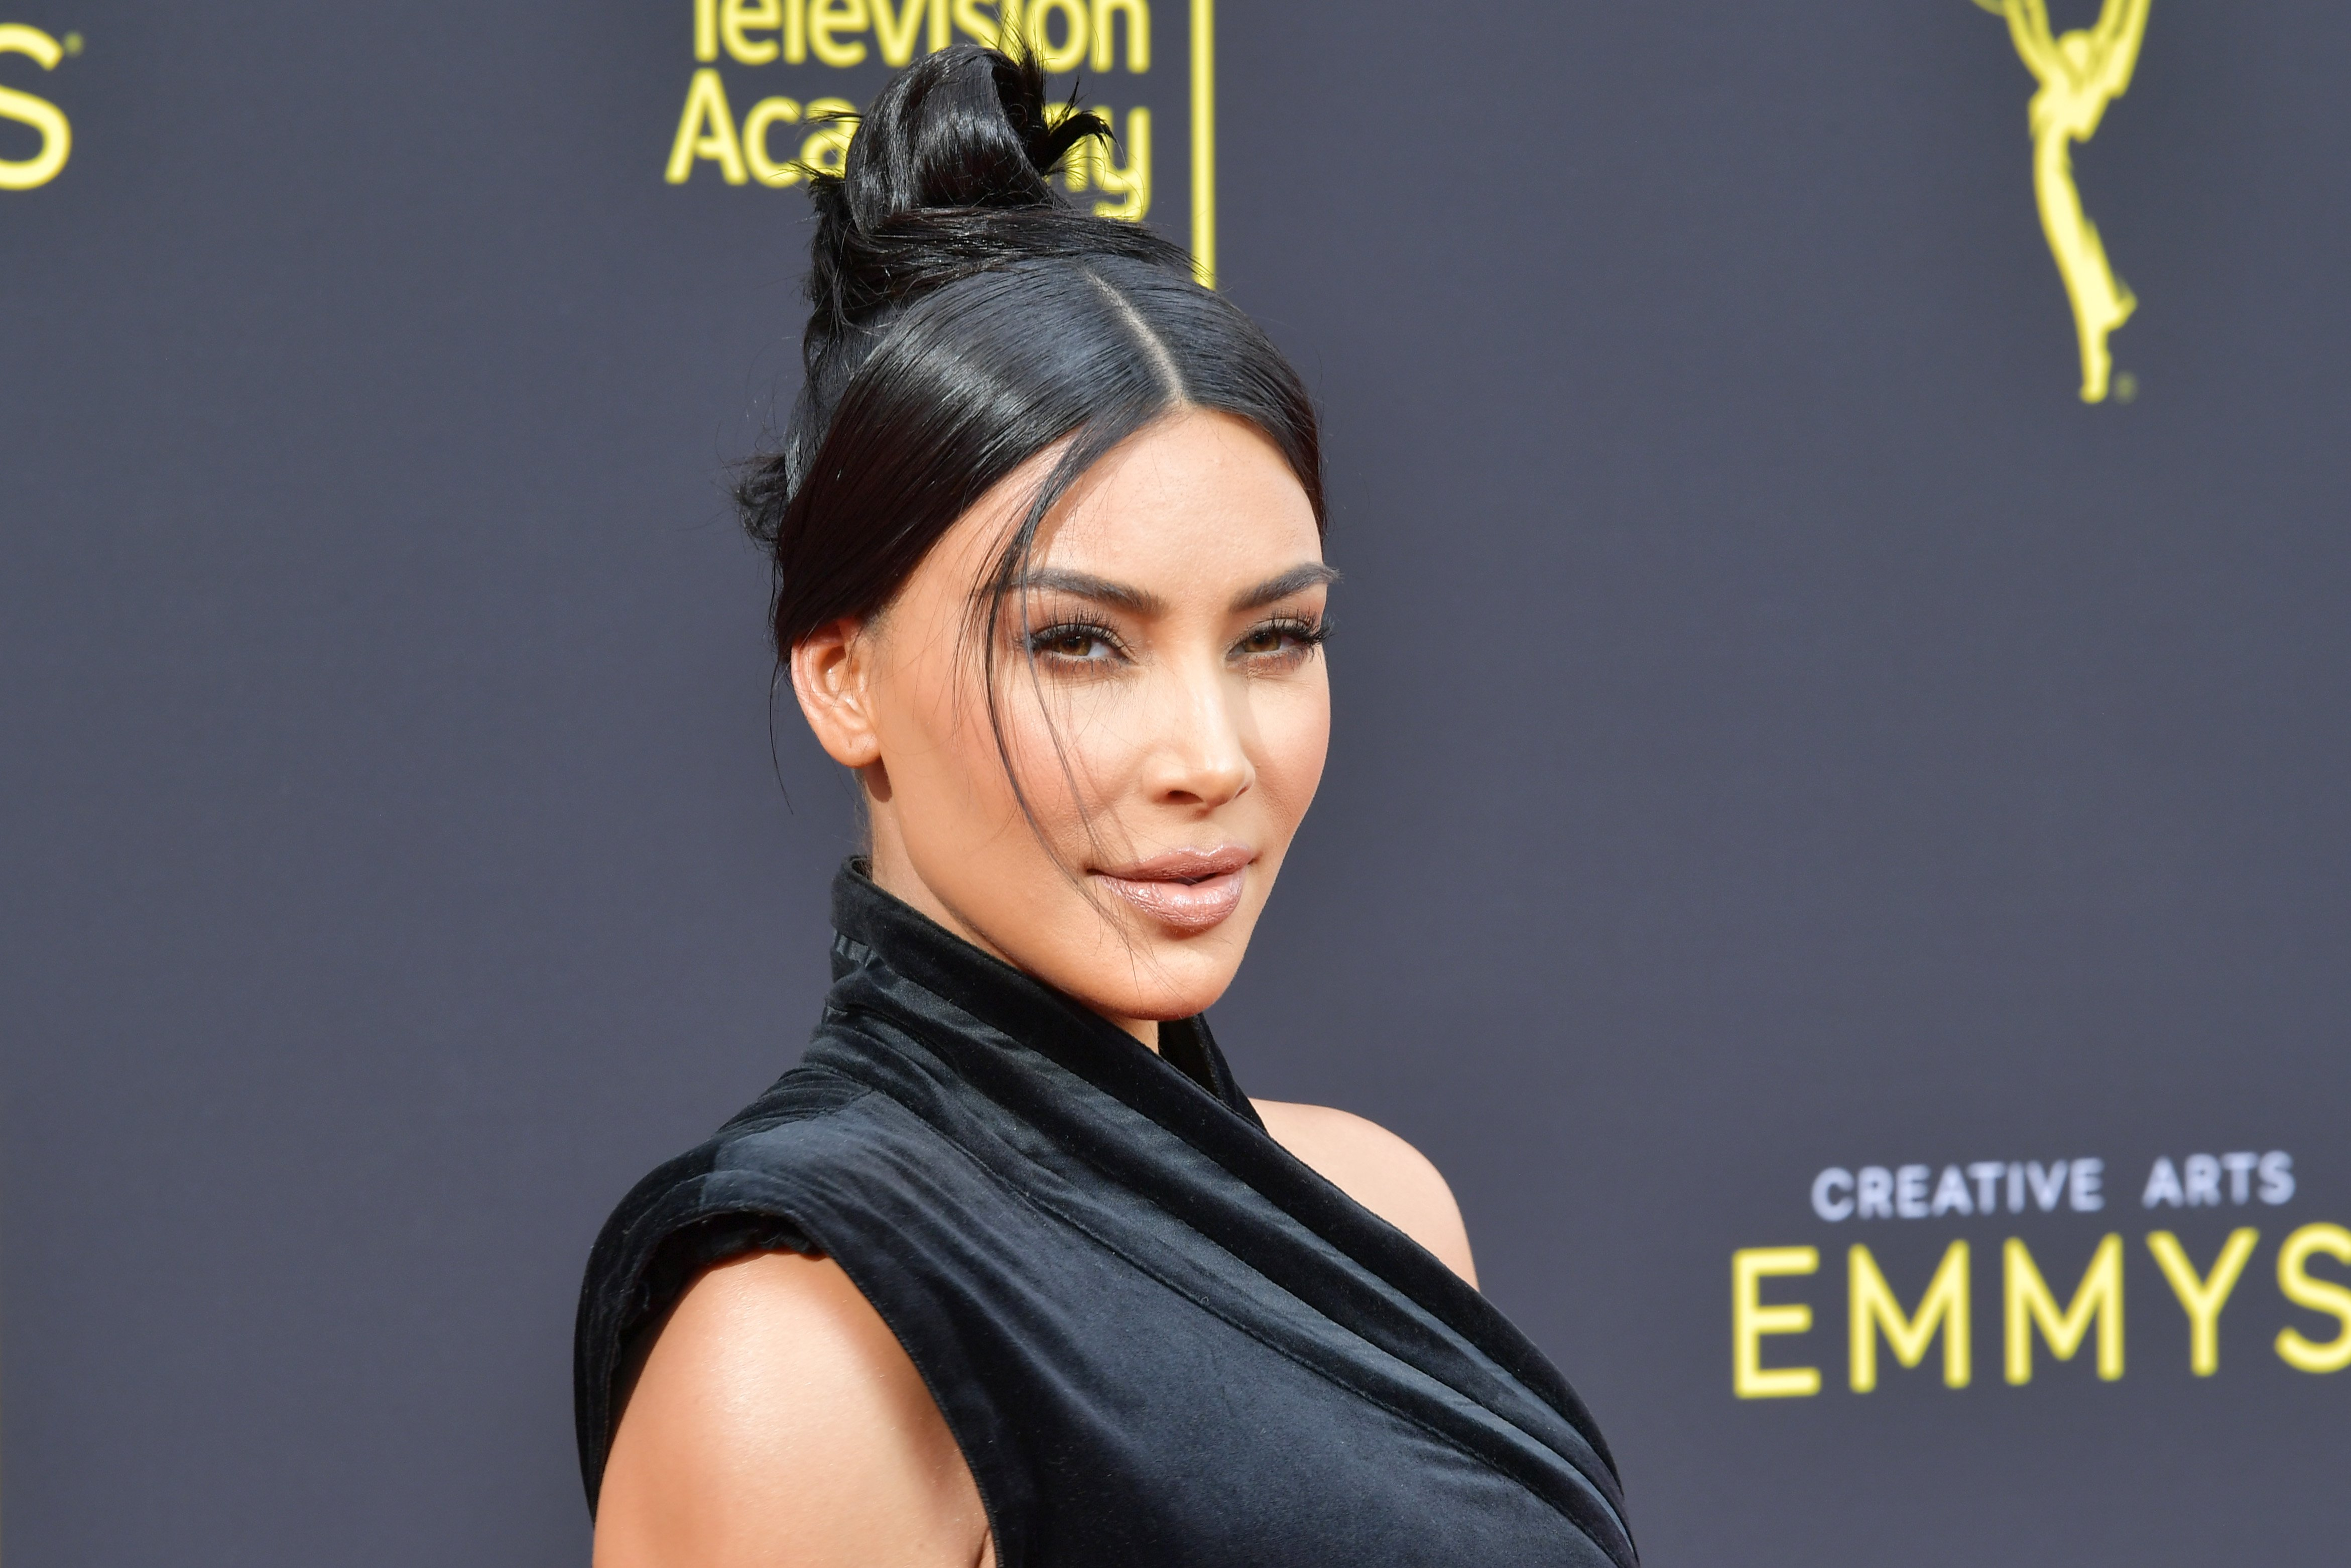 Kim Kardashian West at the 2019 Creative Arts Emmy Awards in Los Angeles on September 14, 2019   Photo: Getty Images